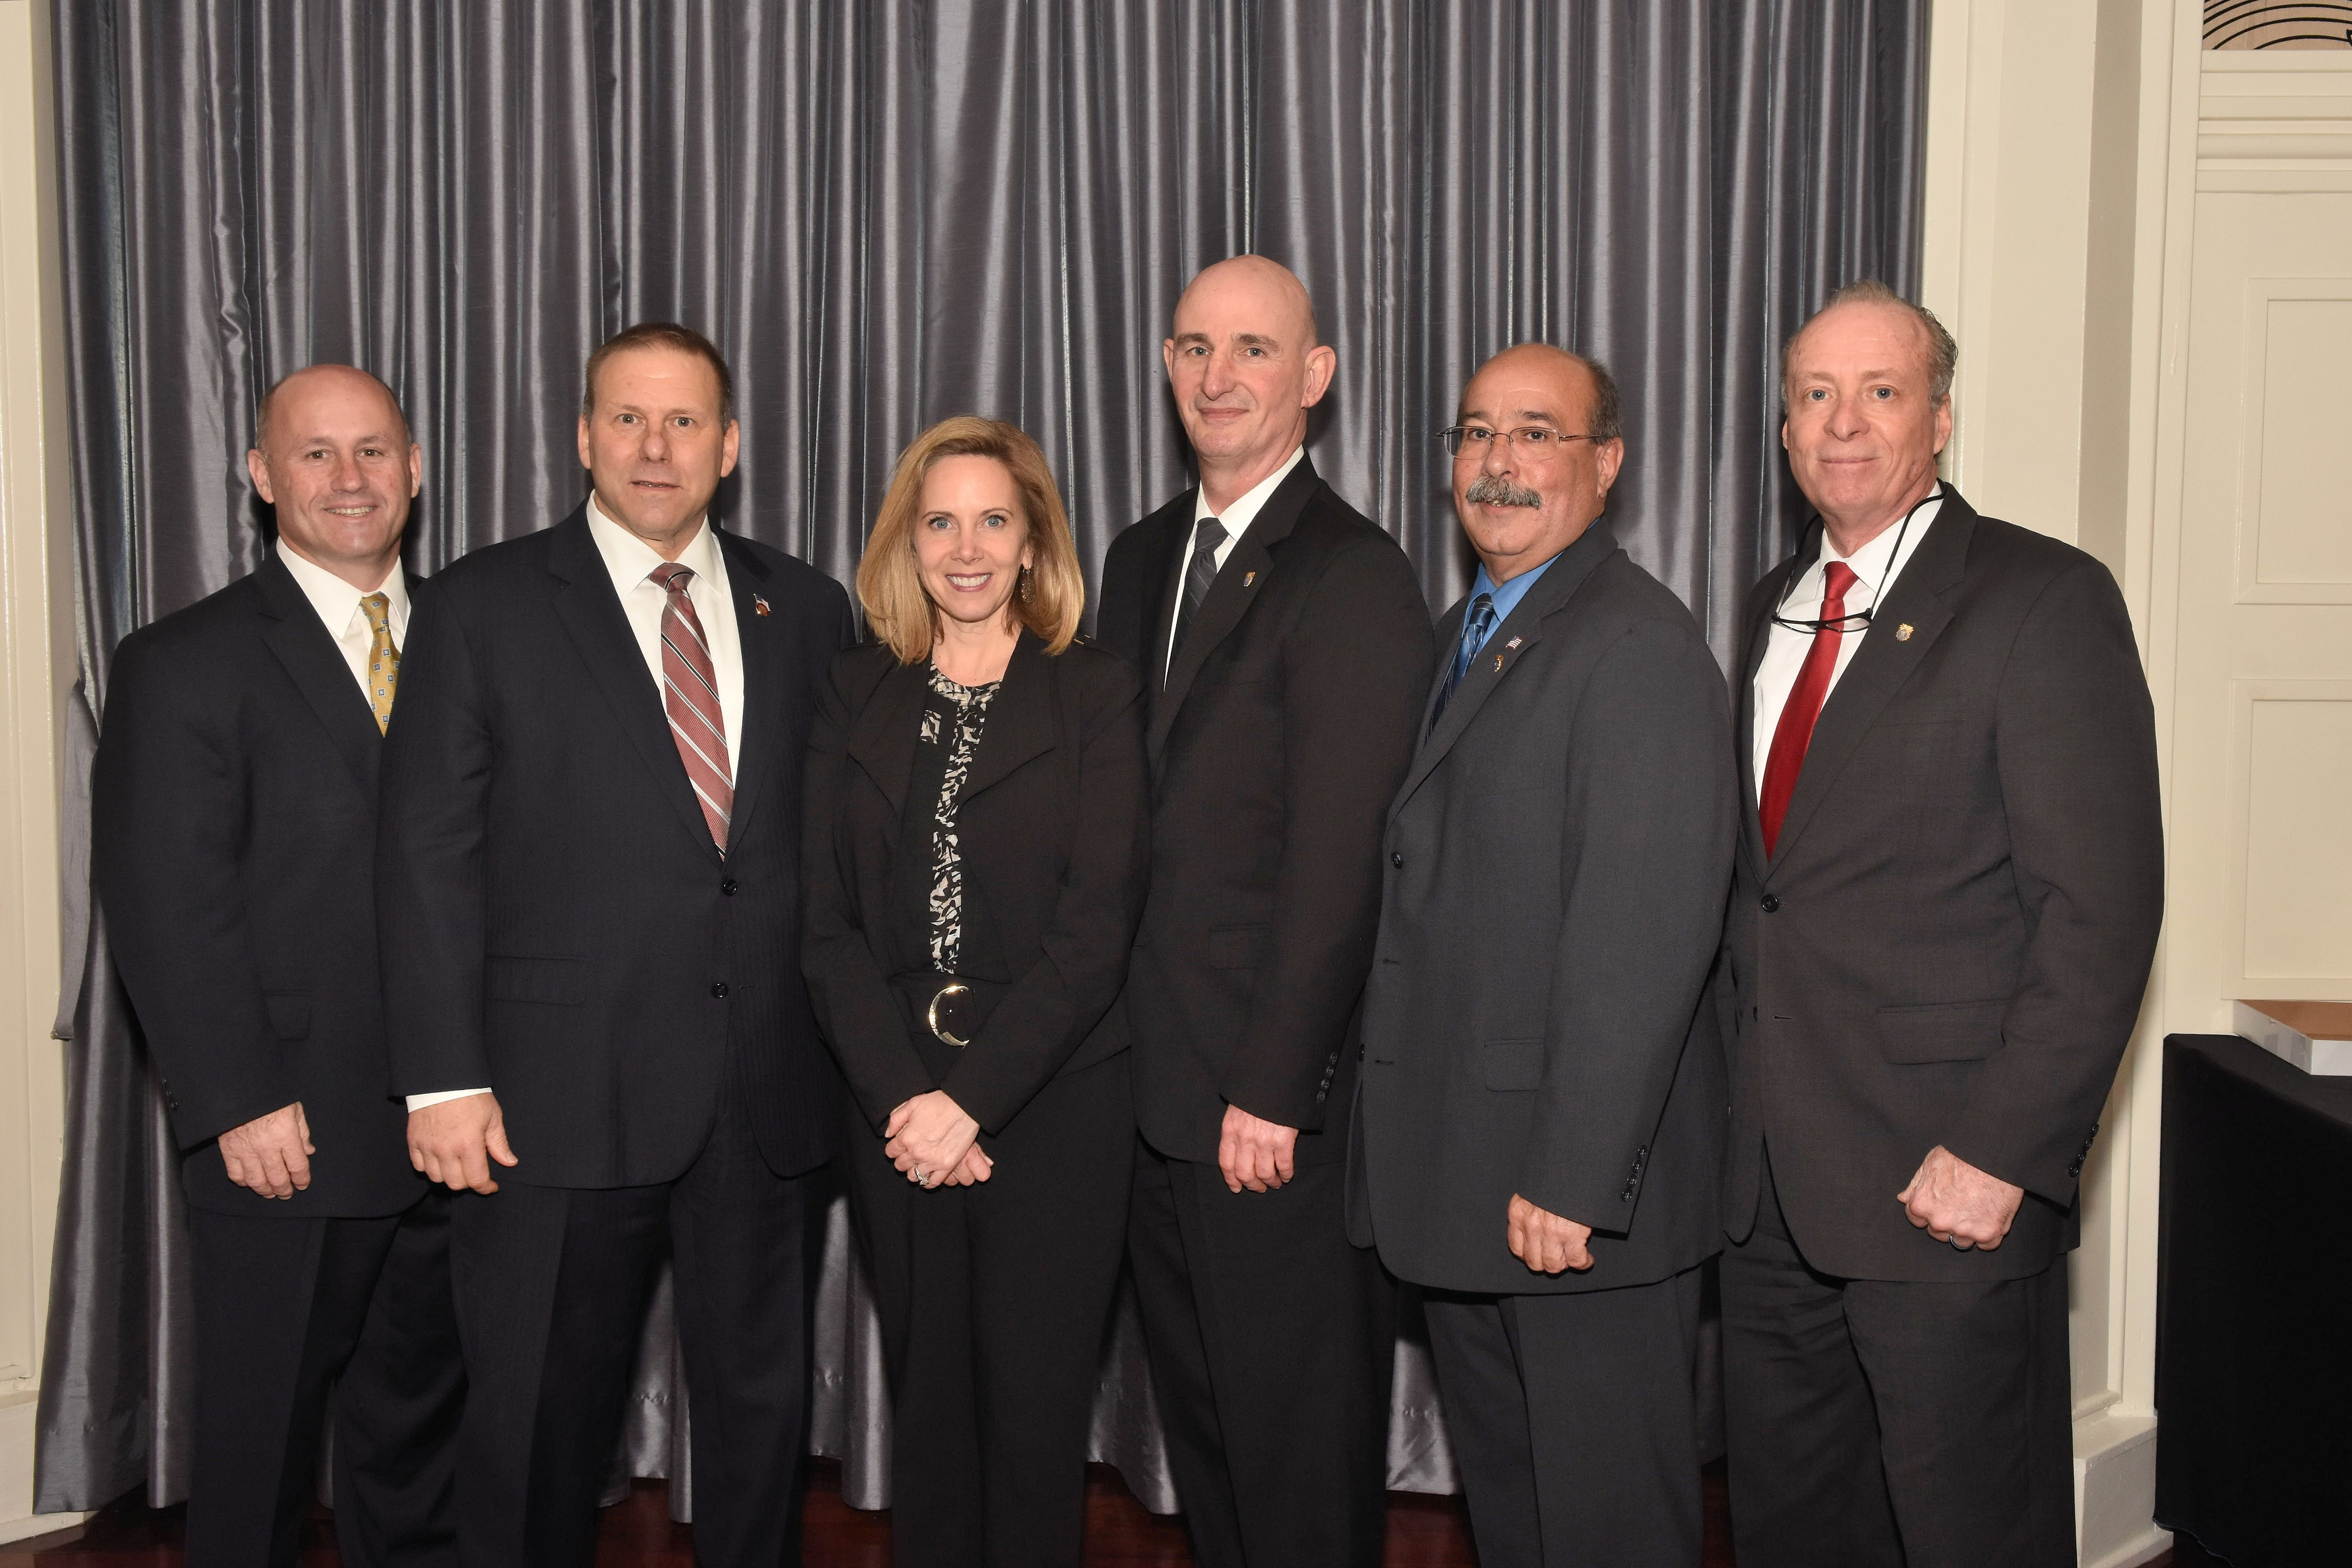 rockville centre police department commissioner charles gennario hempstead town supervisor laura gillen garden city police commissioner and chiefs - Garden City Police Department